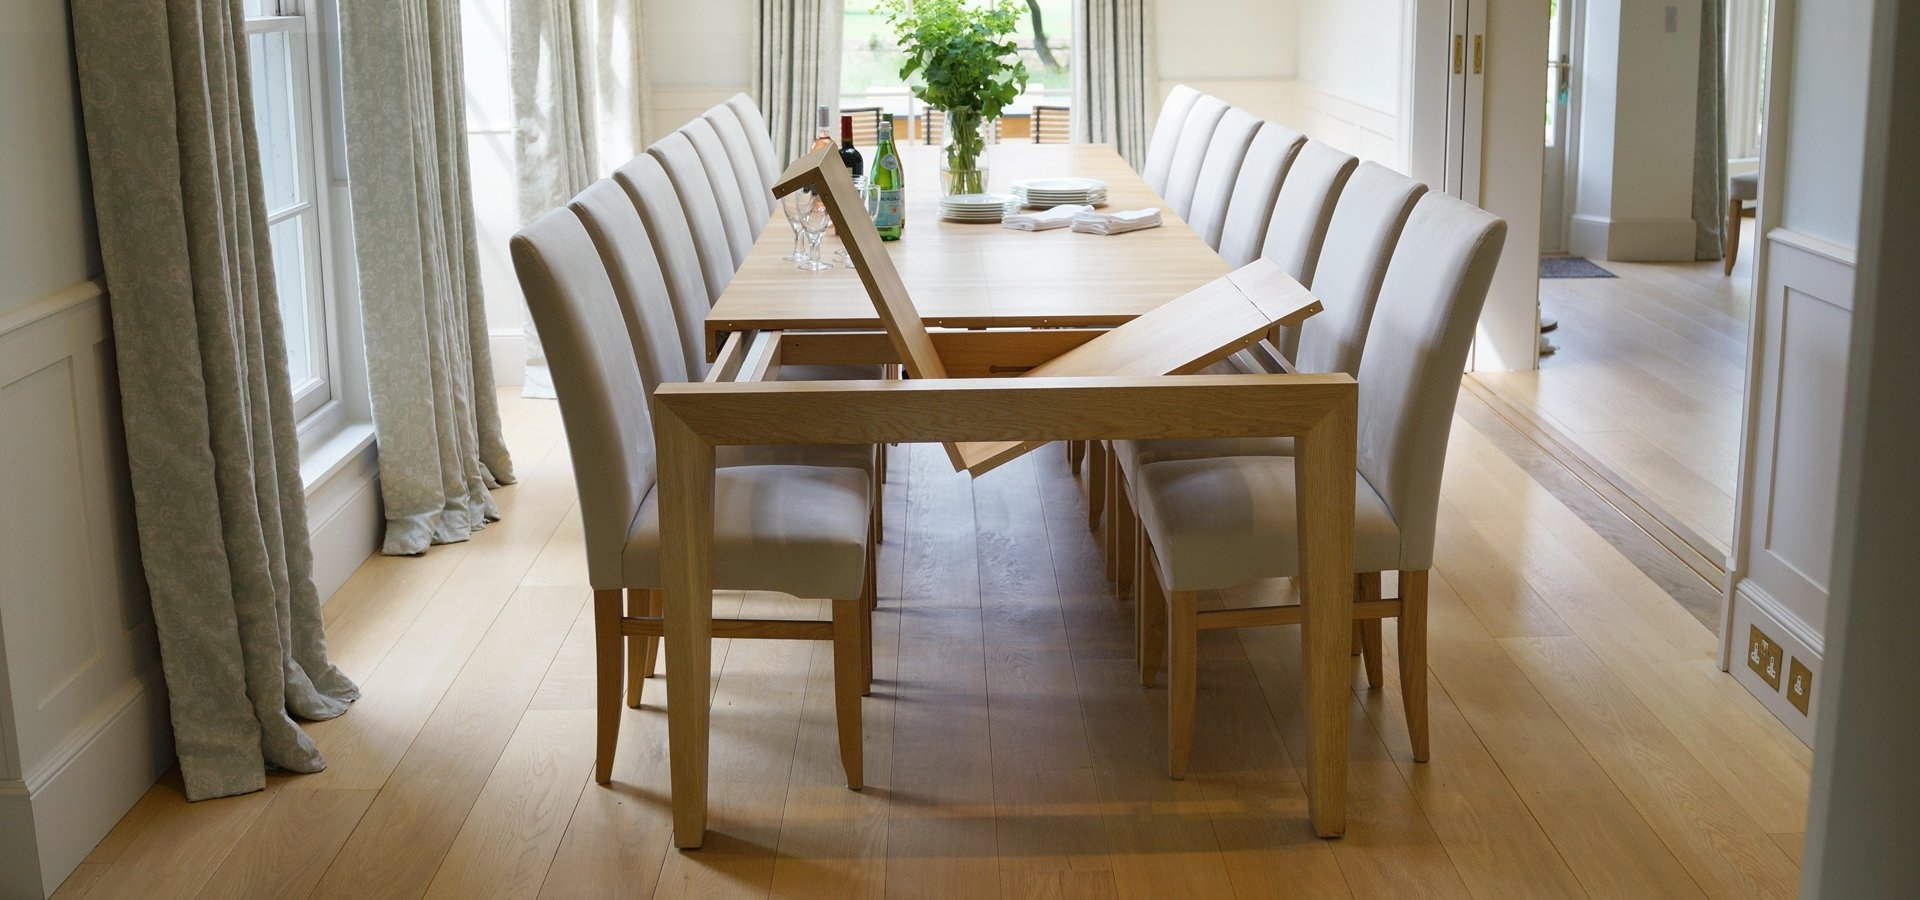 Extendable Oak Dining Tables And Chairs regarding Current Contemporary Dining Tables & Furnitureberrydesign. Bespoke /custom